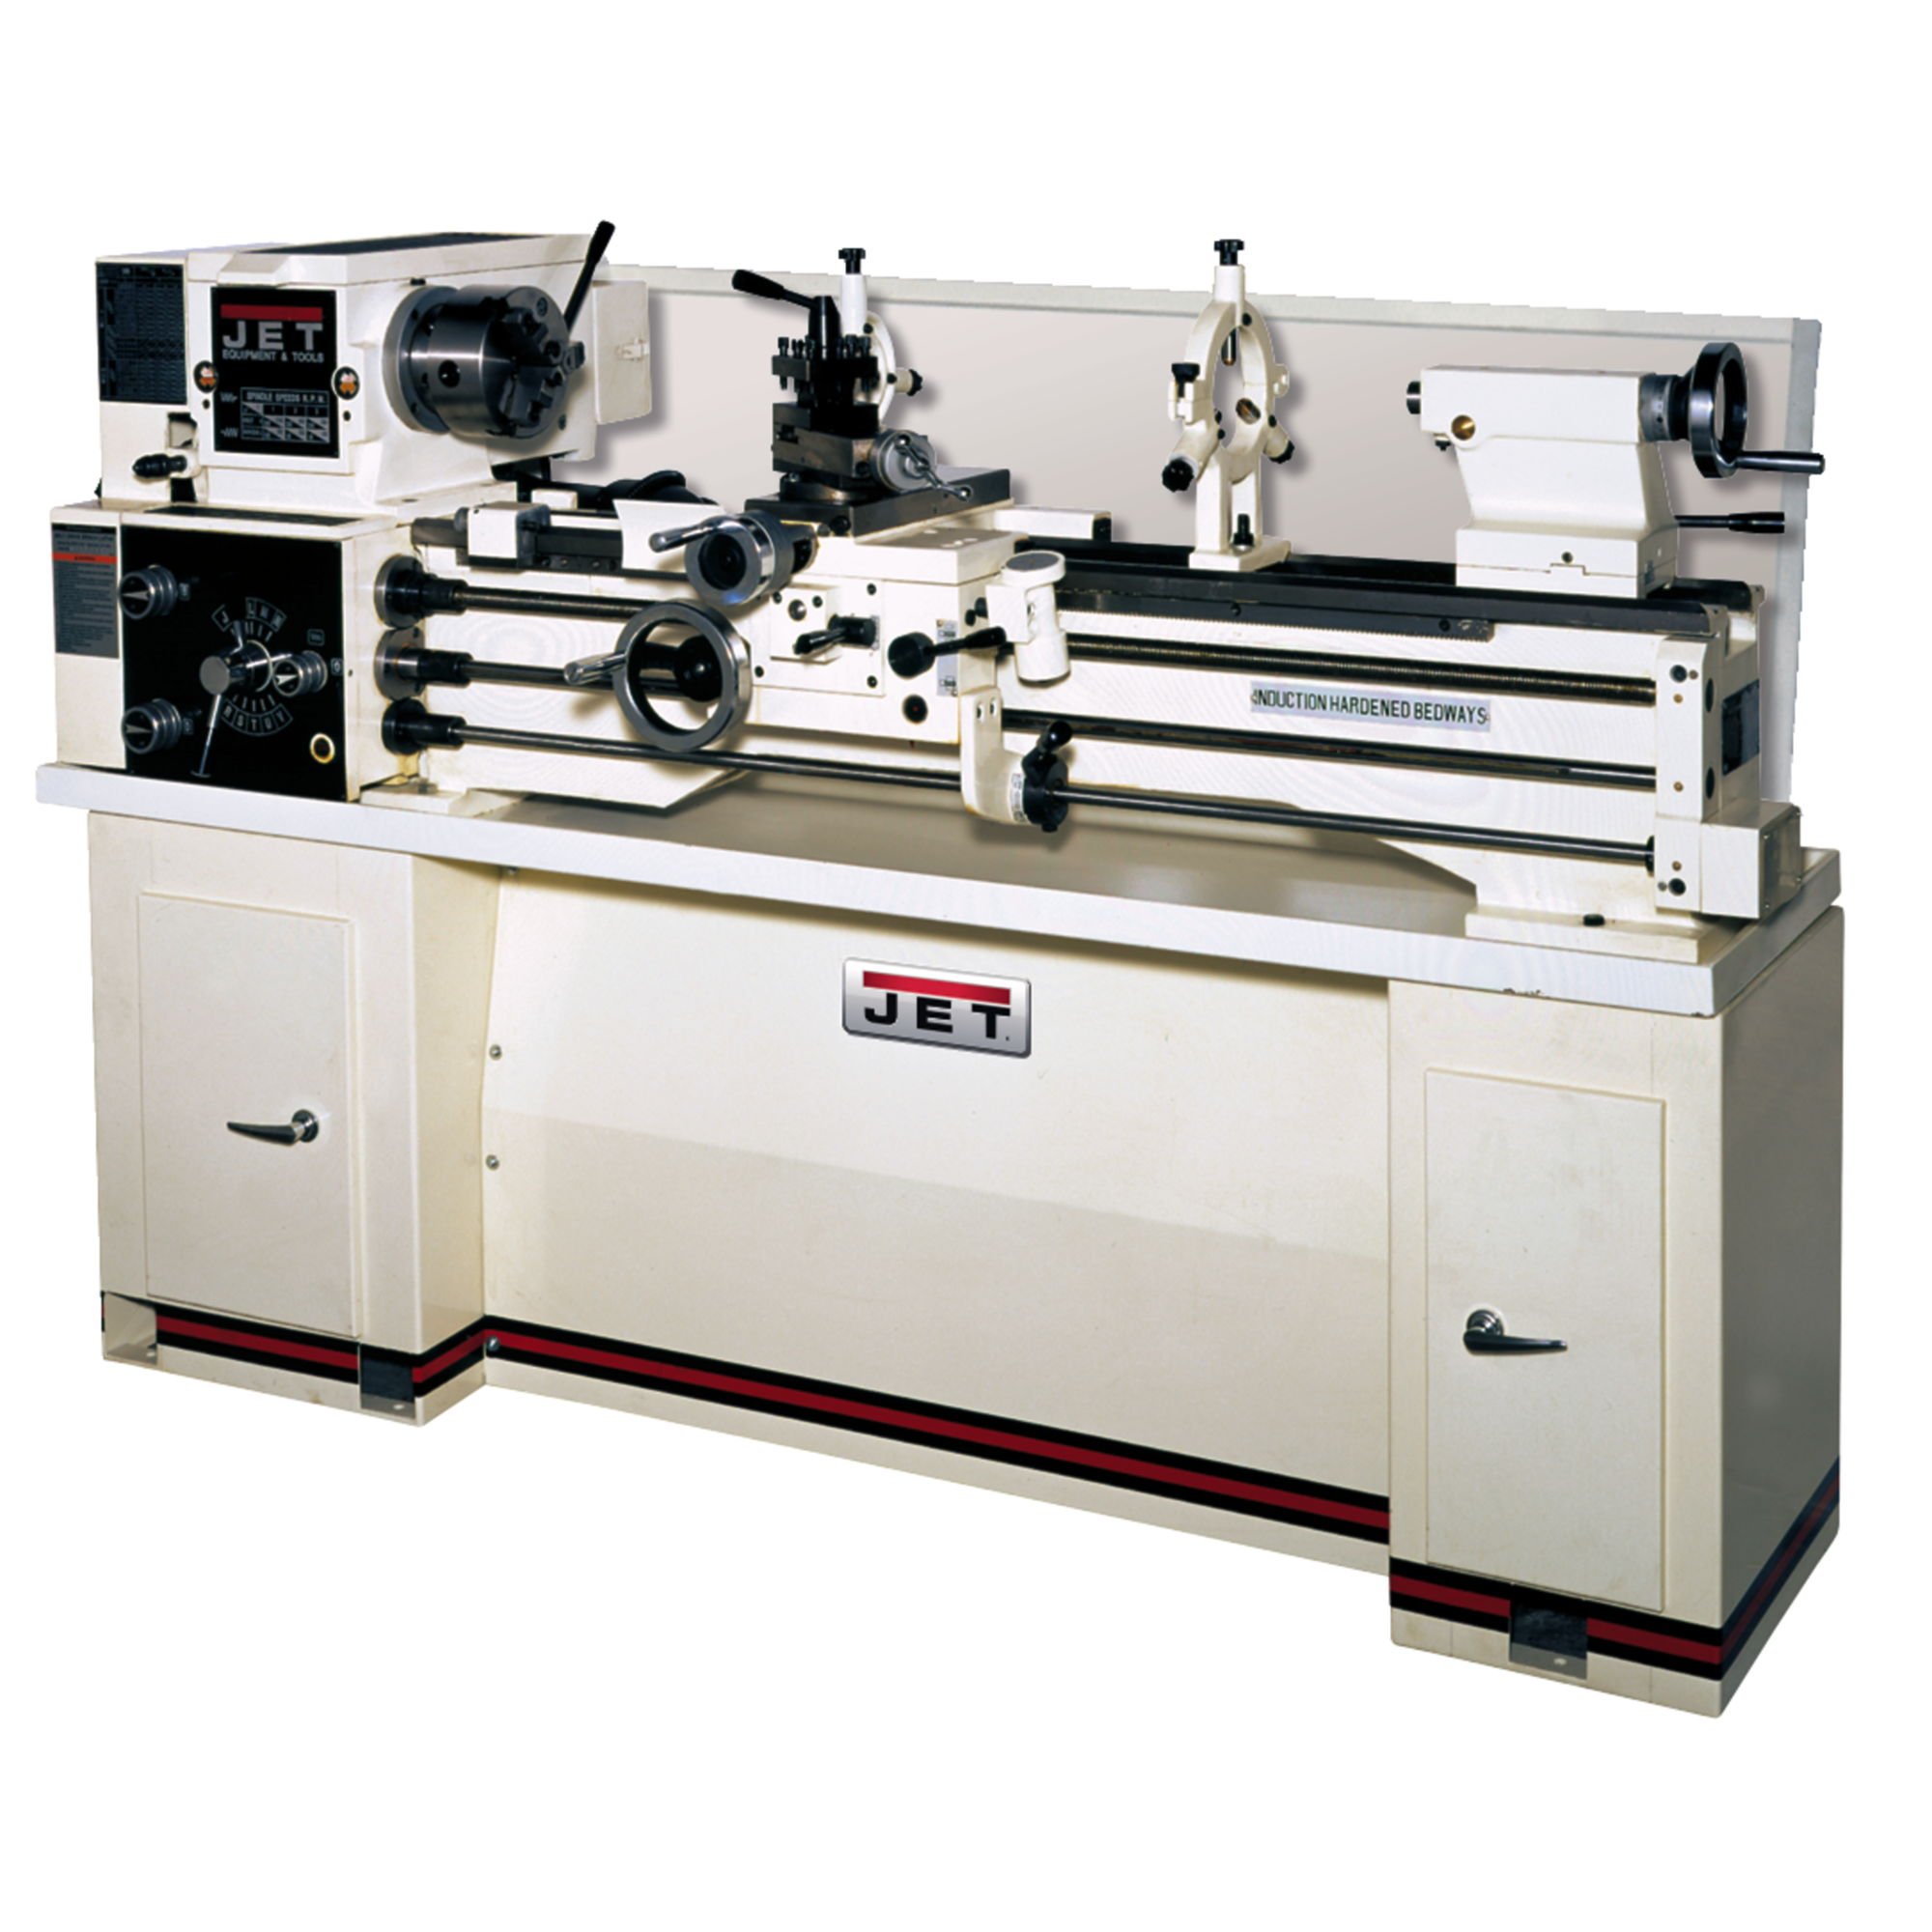 Jet 321130 BDB-1340A Lathe with NEWALL DP700 DRO Installed